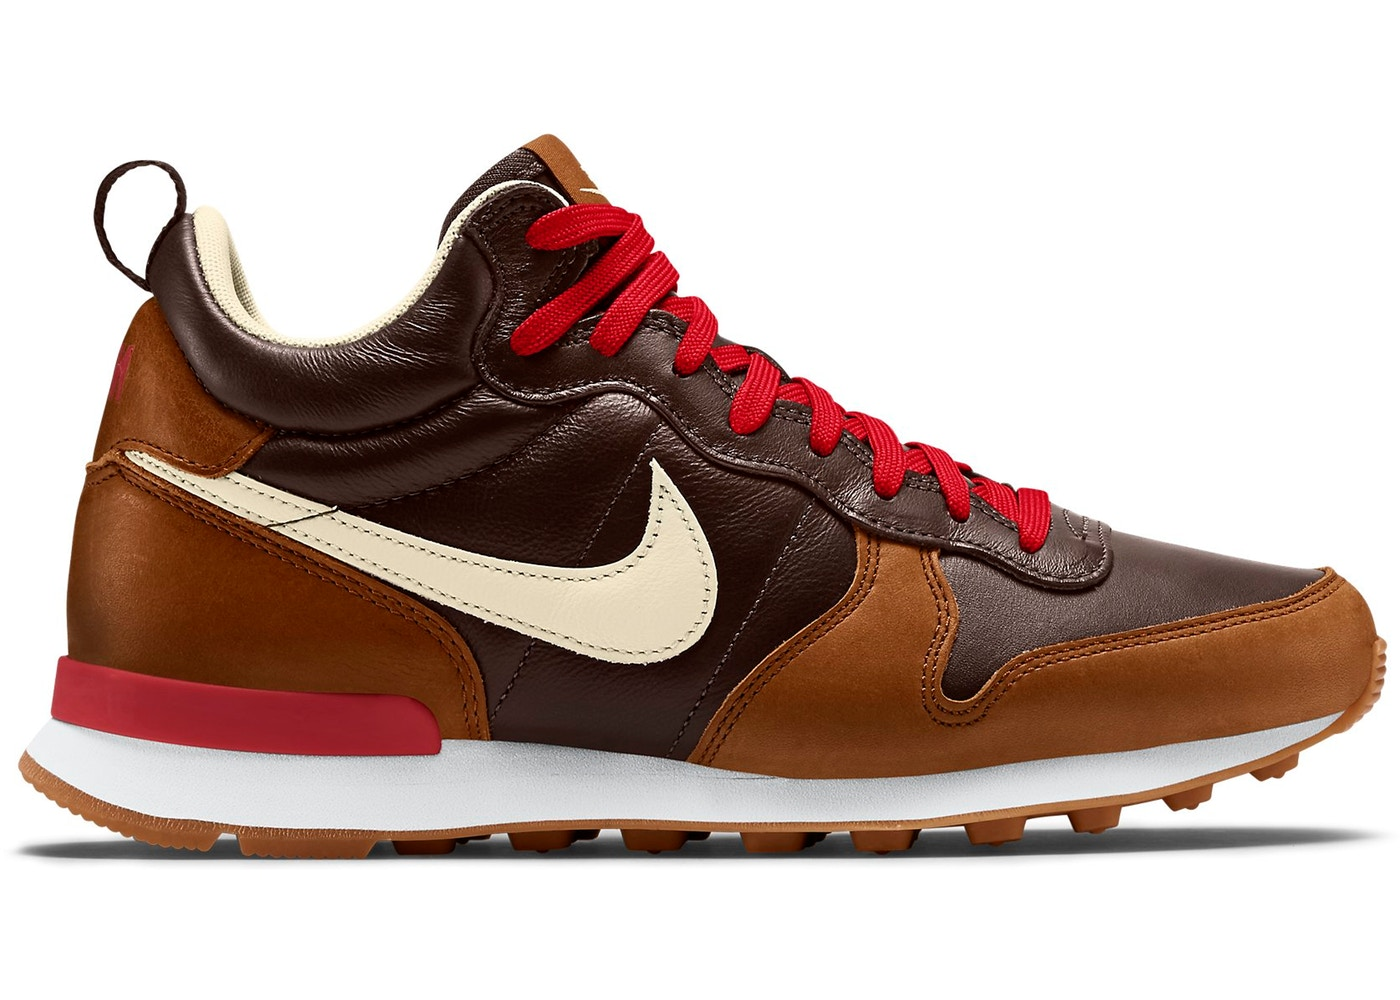 factory price 7a24b d3565 Nike Internationalist Mid Escape - 705073-200